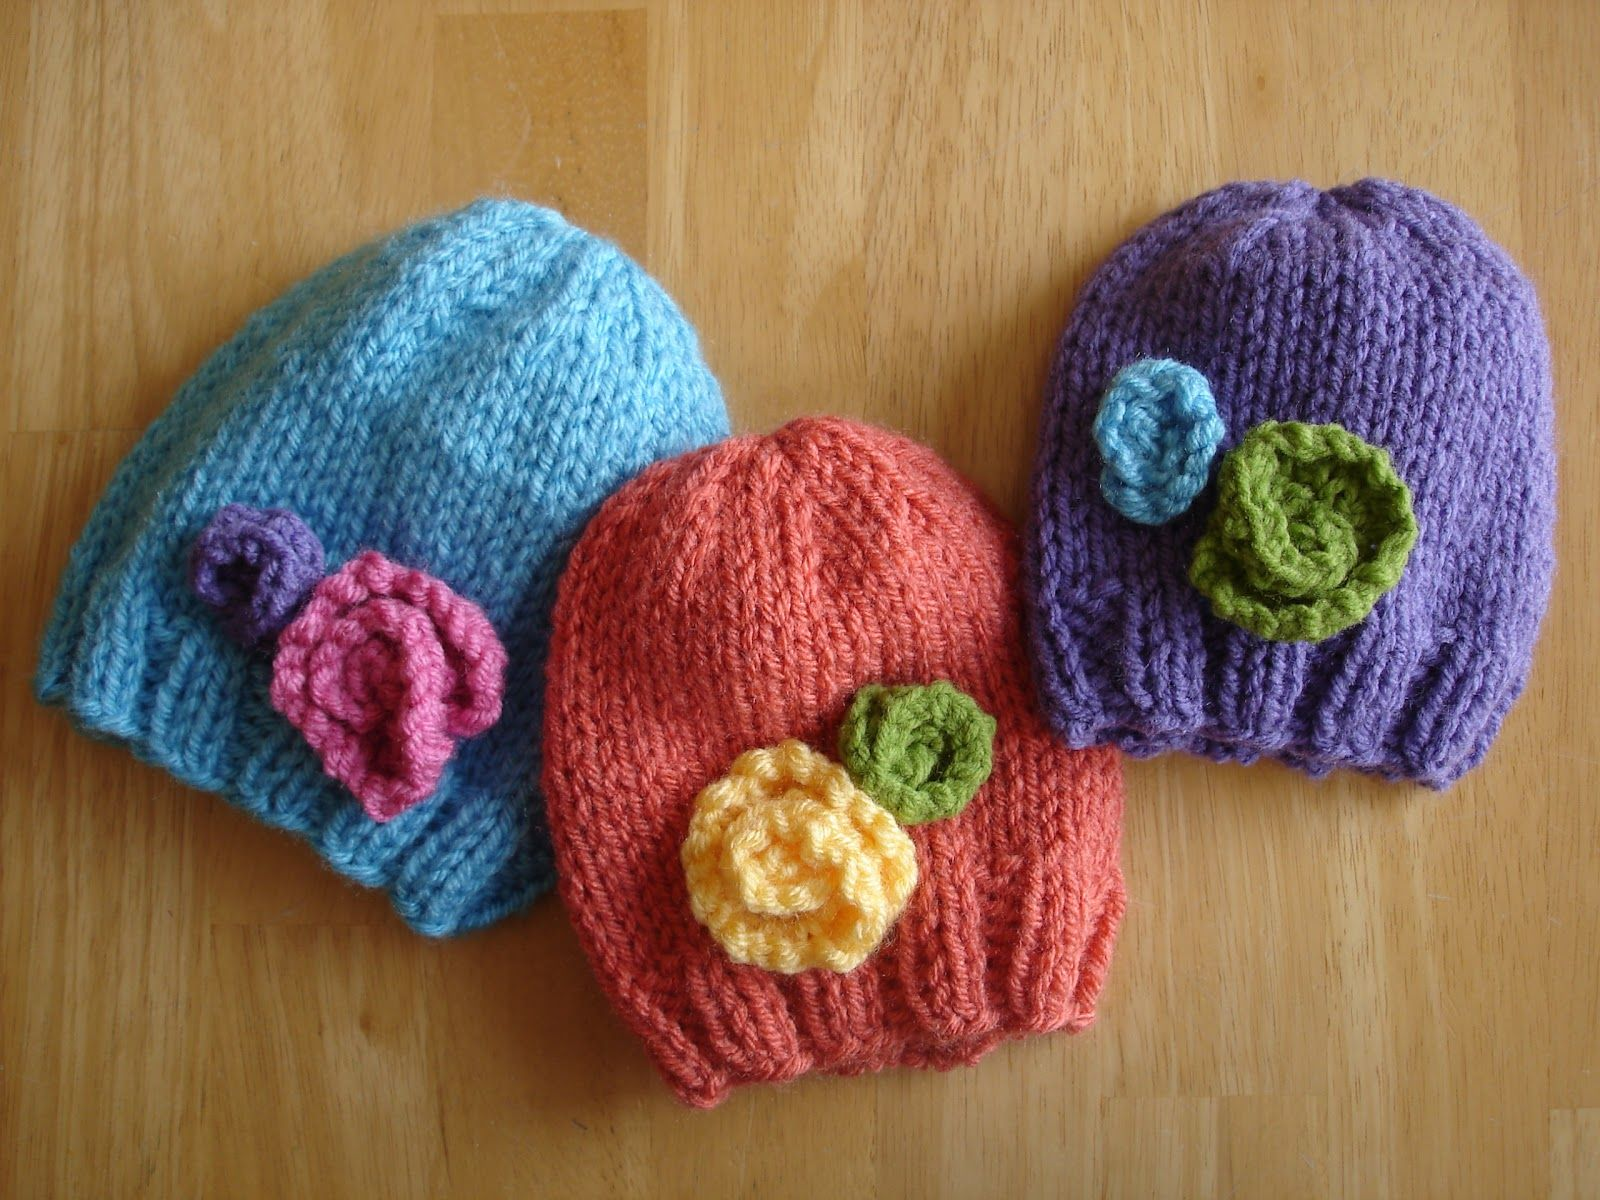 Free knitting pattern all sizes preemie newborn or larger free knitting pattern all sizes preemie newborn or larger knitted flat or in bankloansurffo Gallery